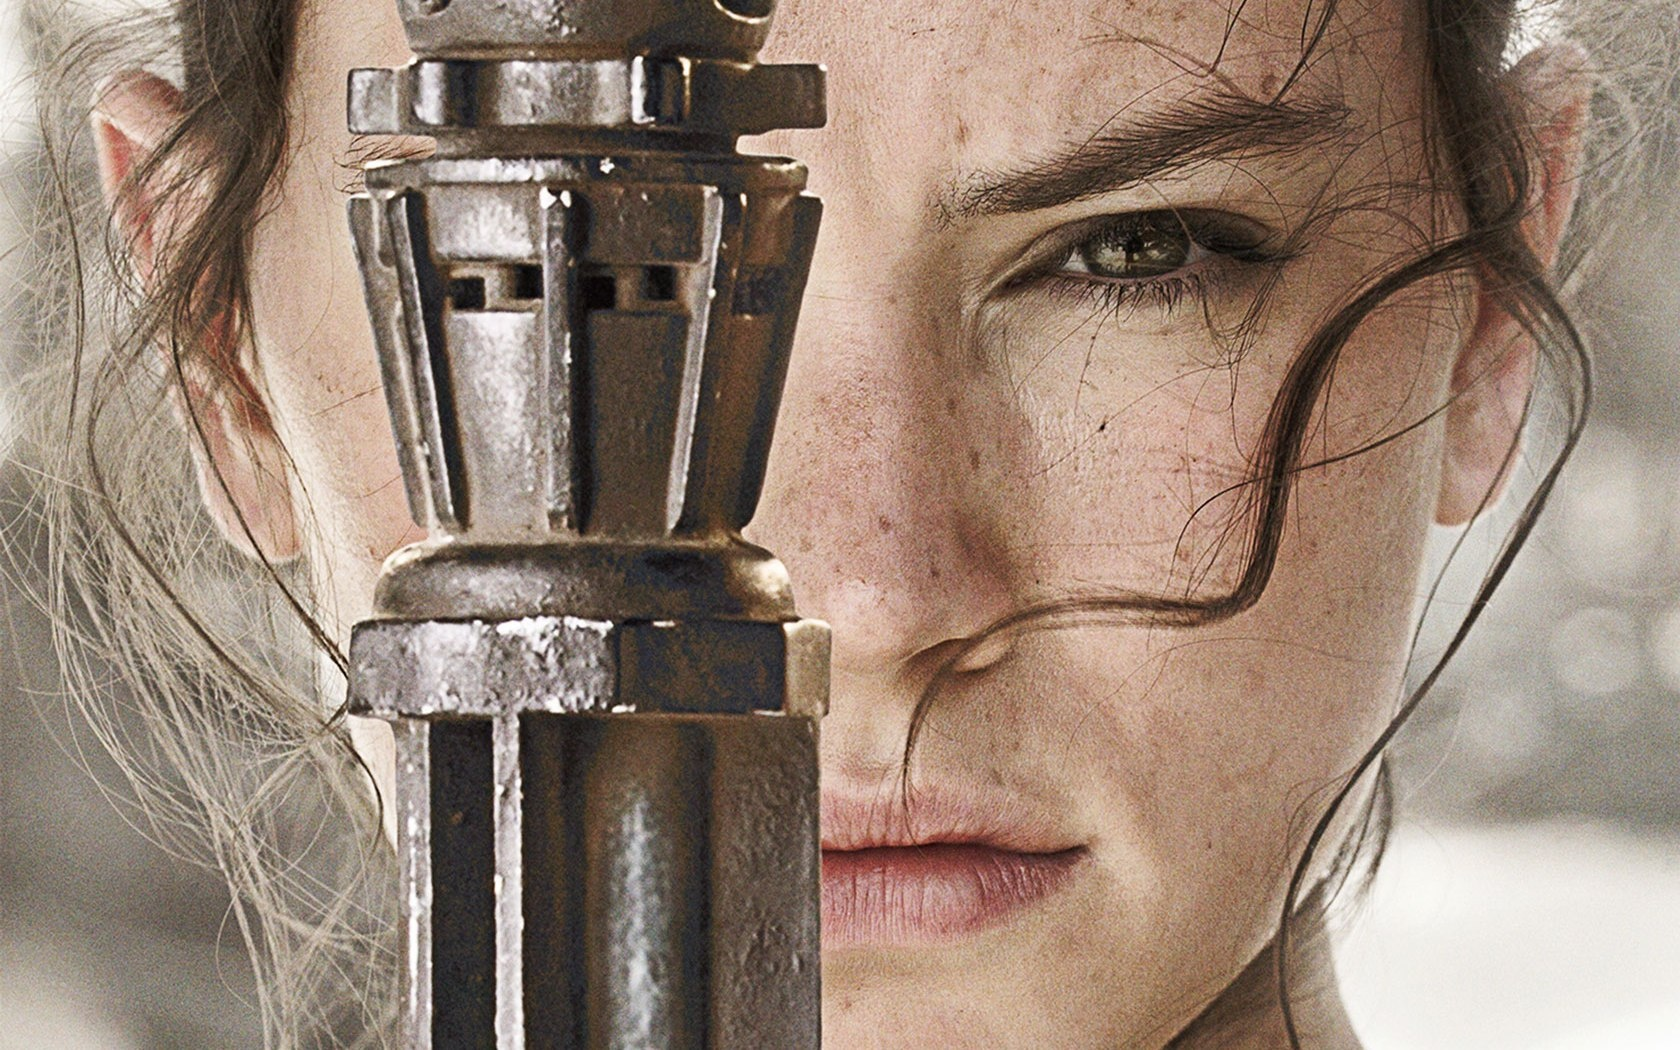 Download Daisy Ridley As Rey Star Wars The Force Awakens Wallpaper